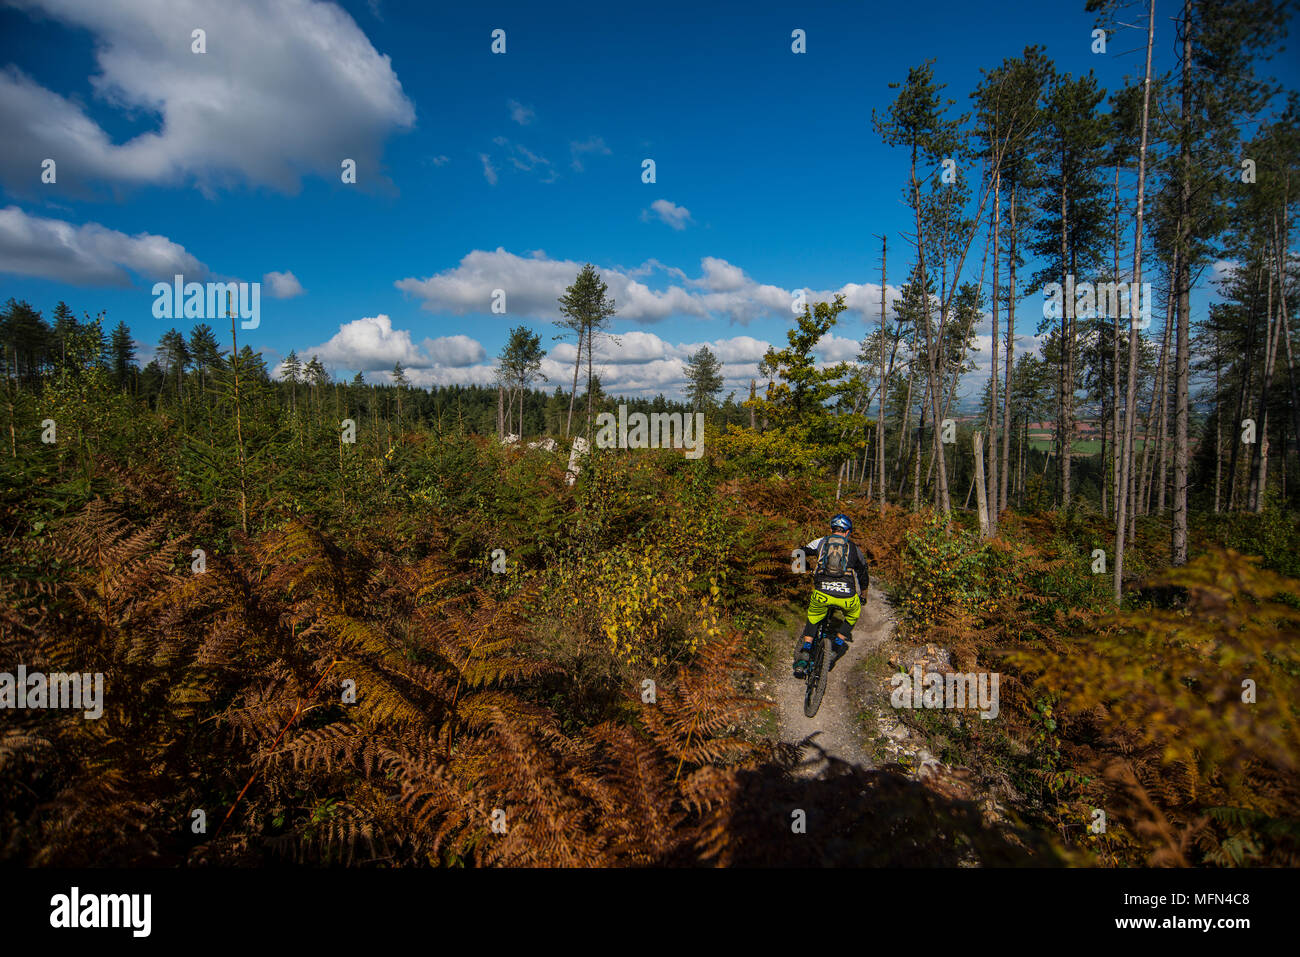 Mountain bikers ride a trail at Haldon Forest near Exeter in Devon. Stock Photo